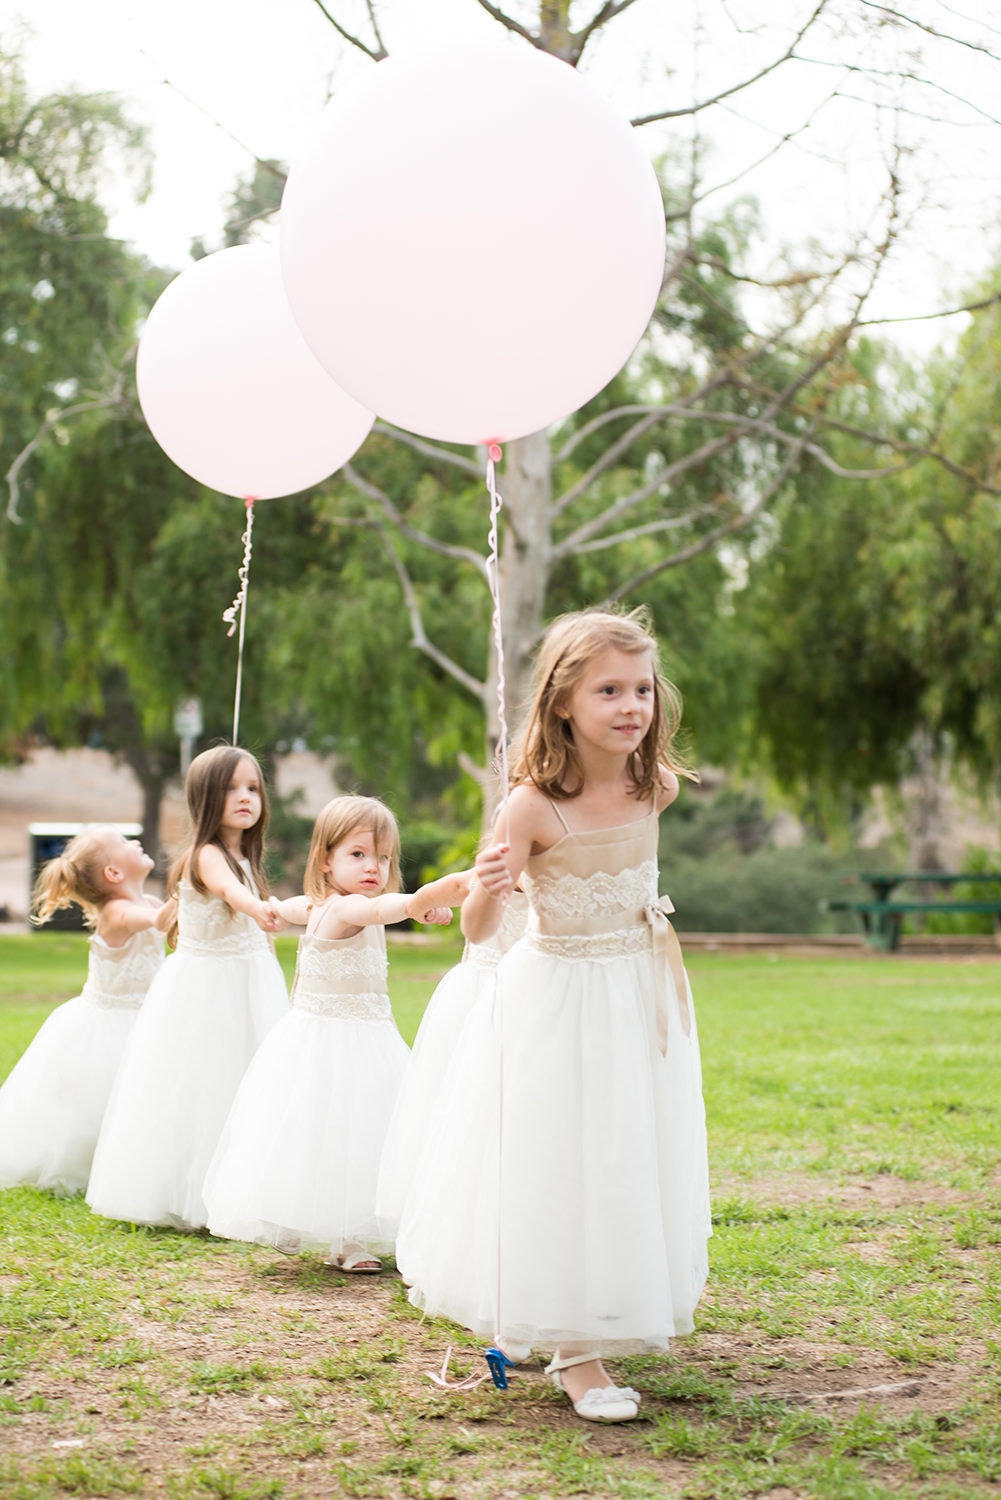 cute flower girl image with balloons